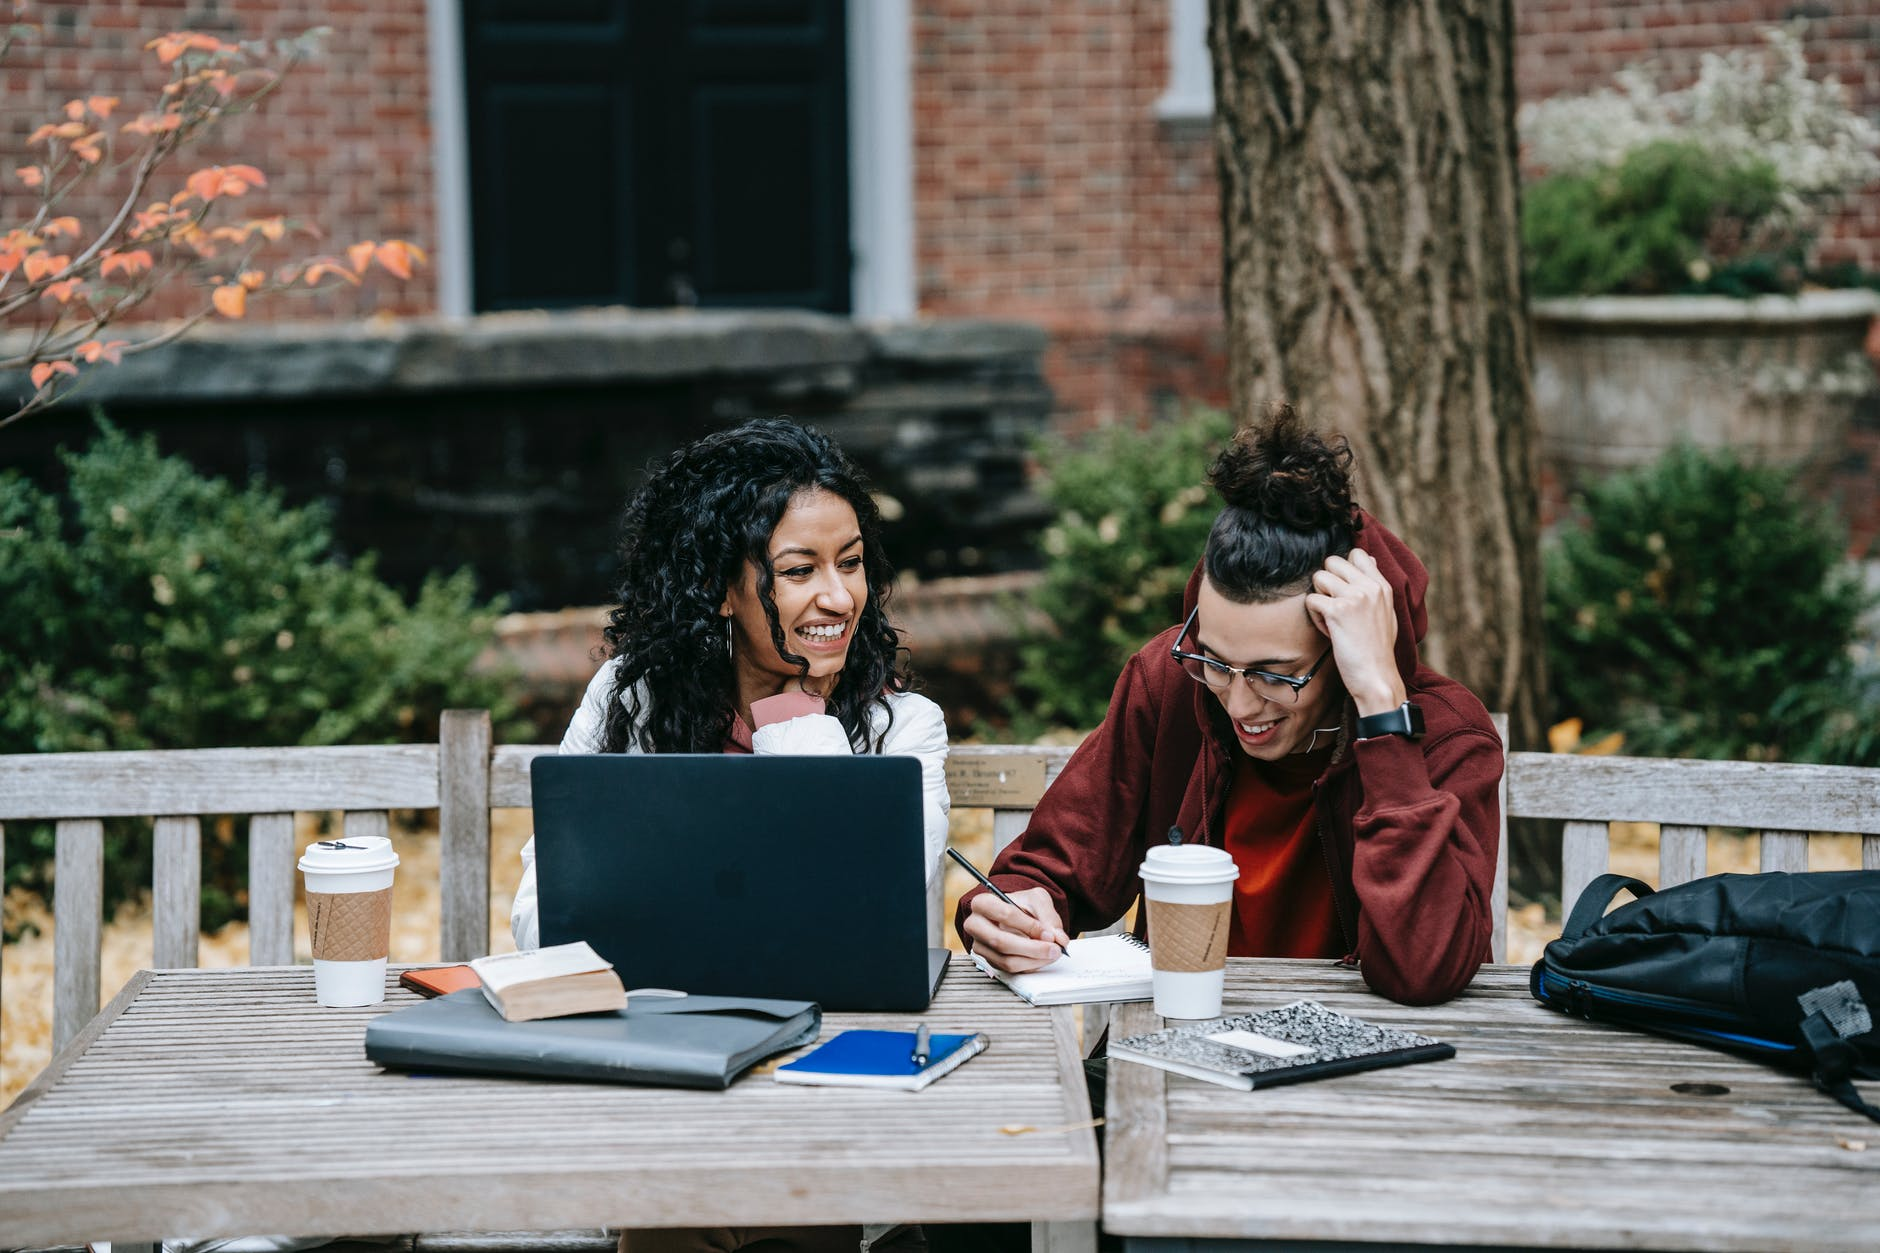 diverse students working together at table with laptop in park